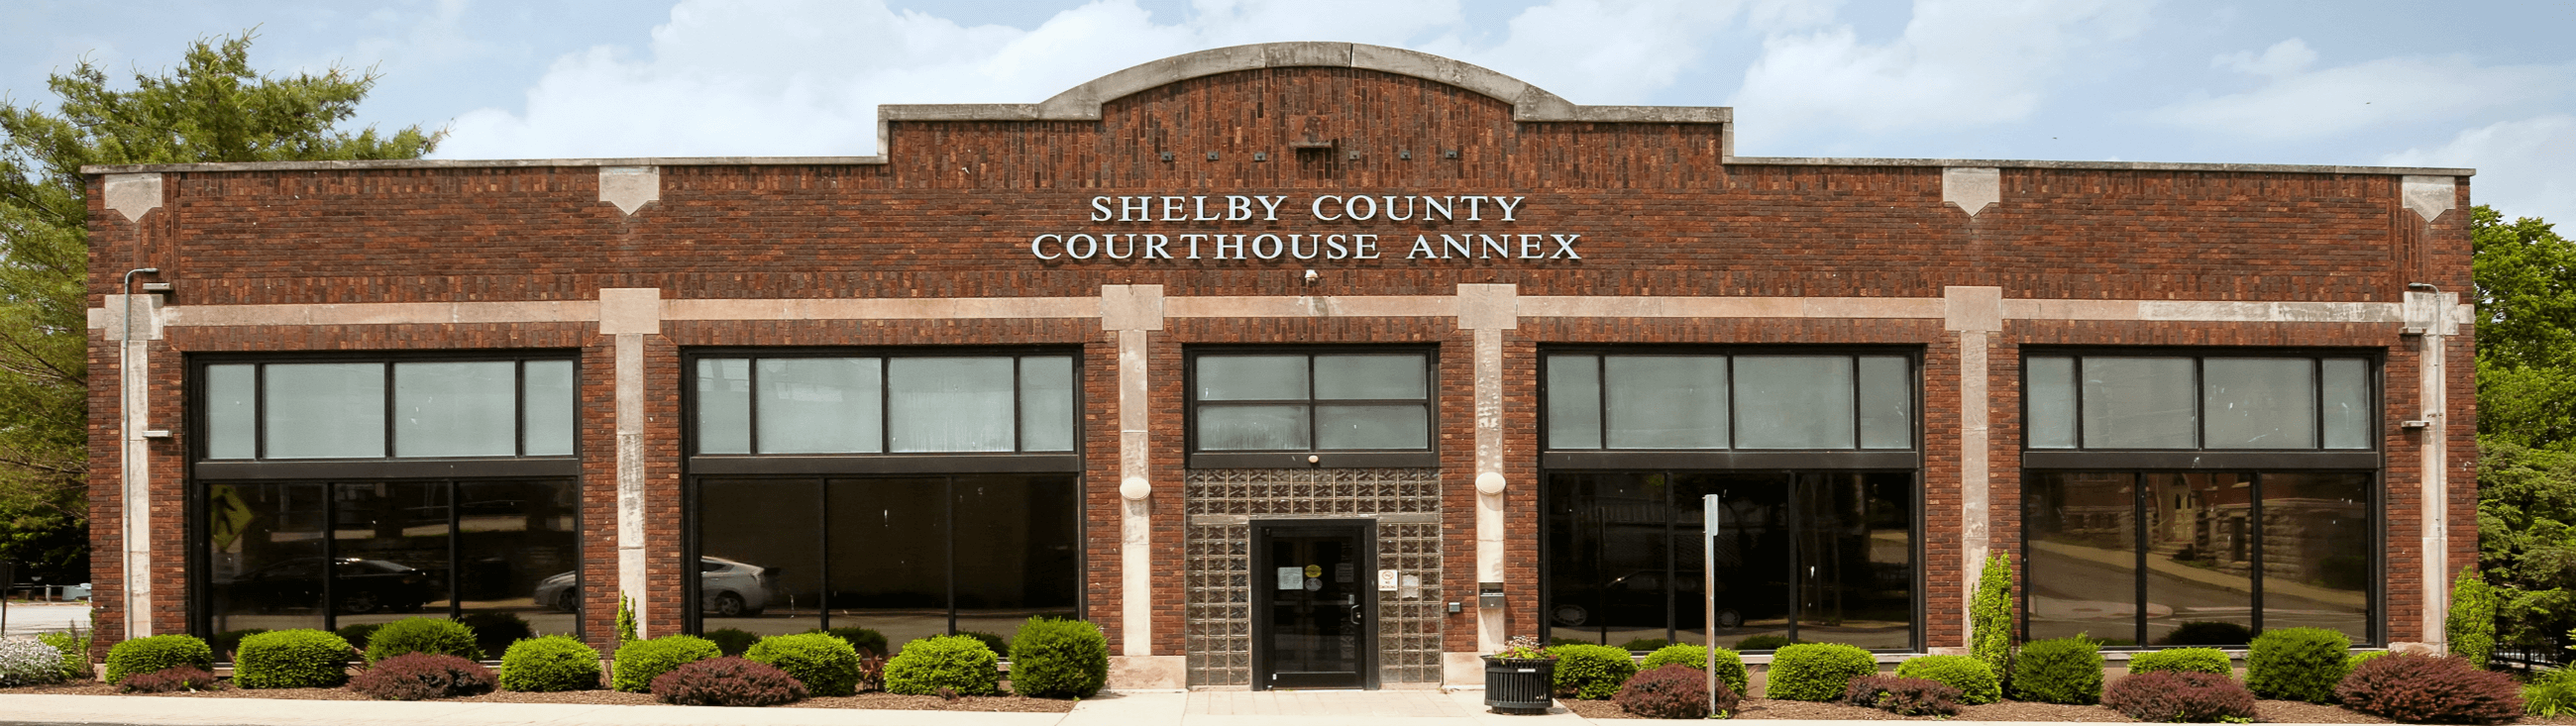 Shelby county courthouse annex